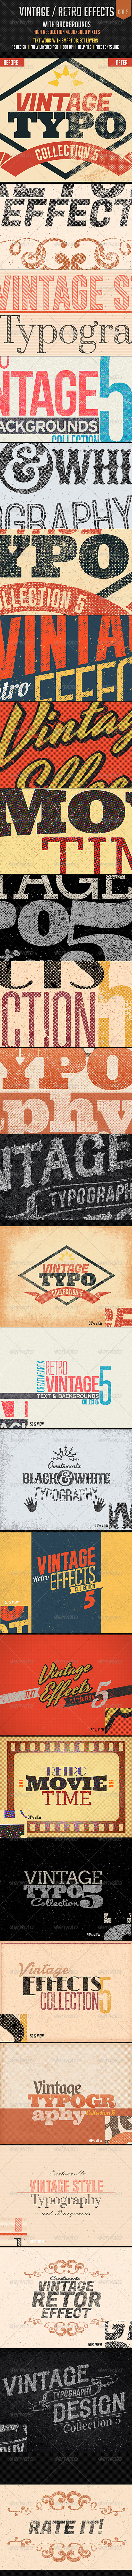 GraphicRiver Vintage Retro Effects Col 5 7952603